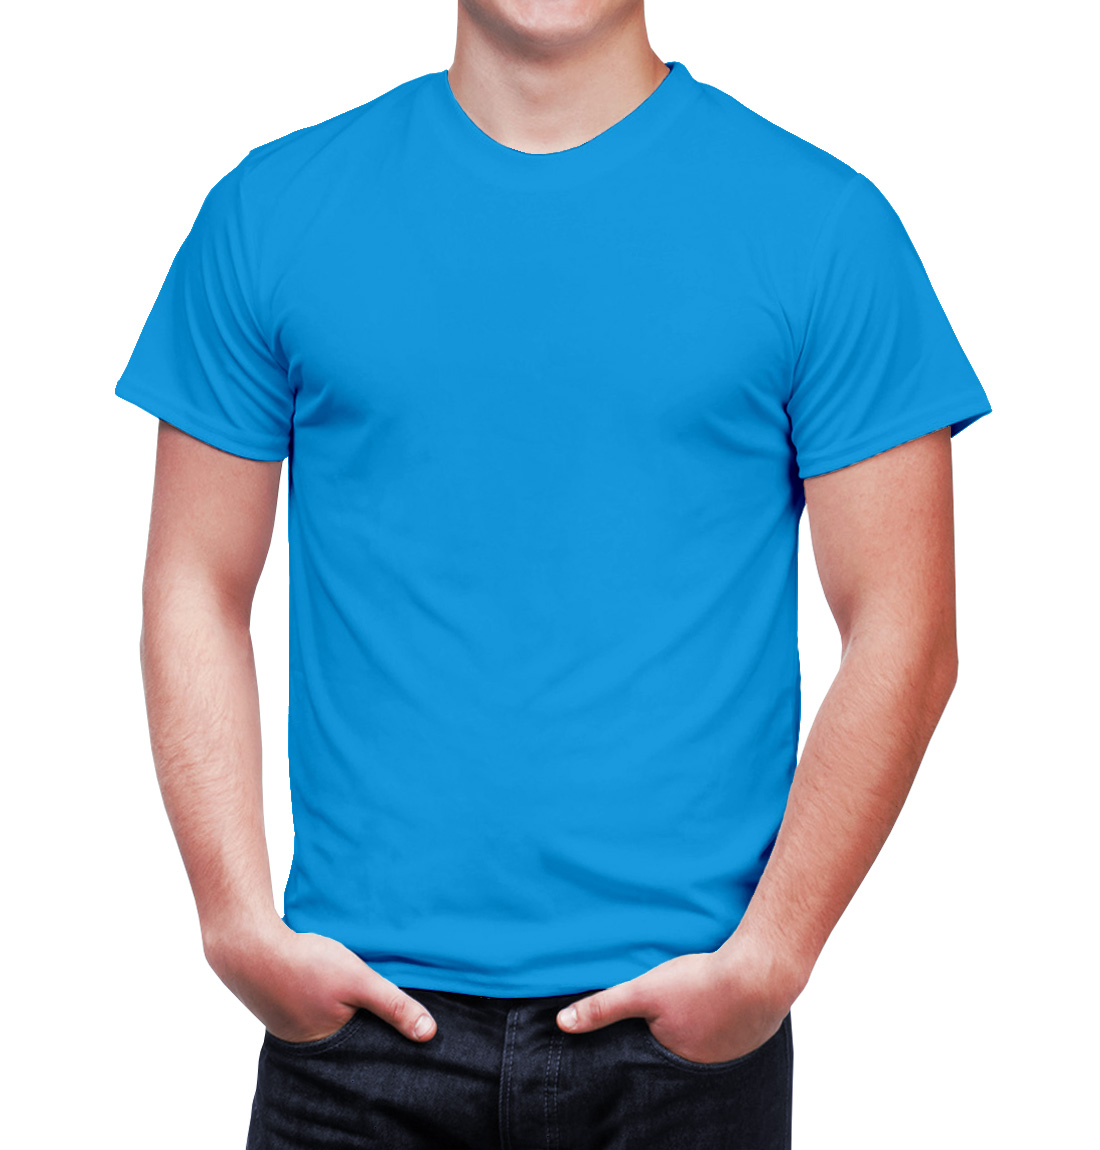 Our Mens Turquoise t-shirt is a bright blank t shirt for any occasion. Get this colorful blank t shirt for men for printing or for everyday wear.